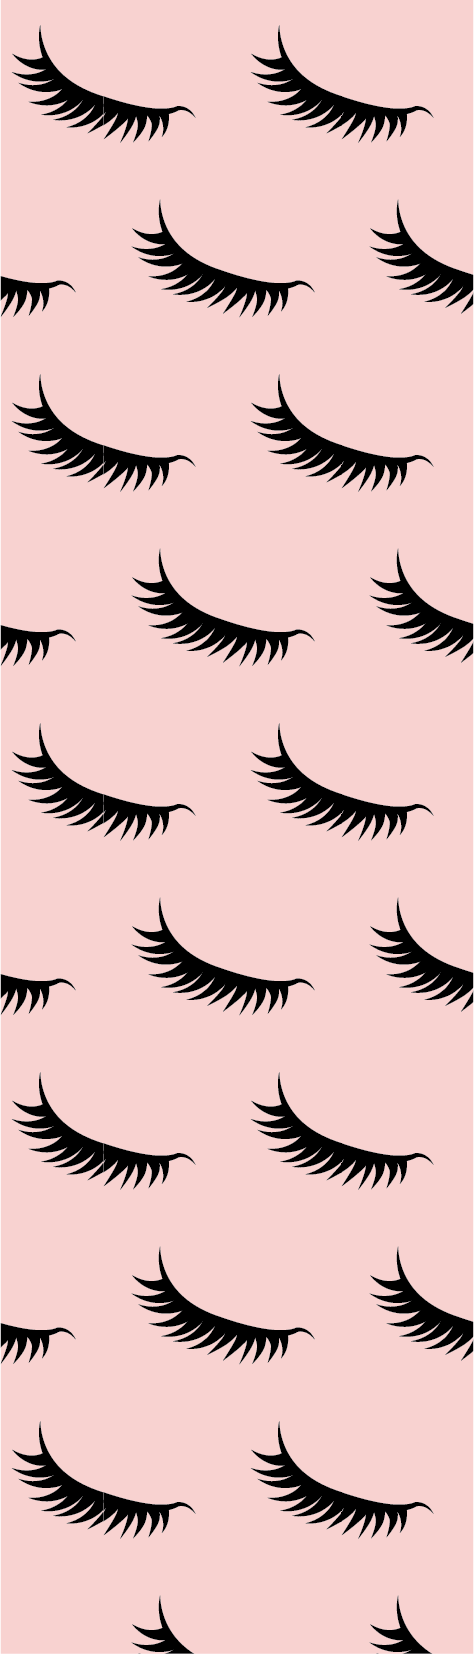 Pen-Design_baby pink and black - repeated lash pattern.png